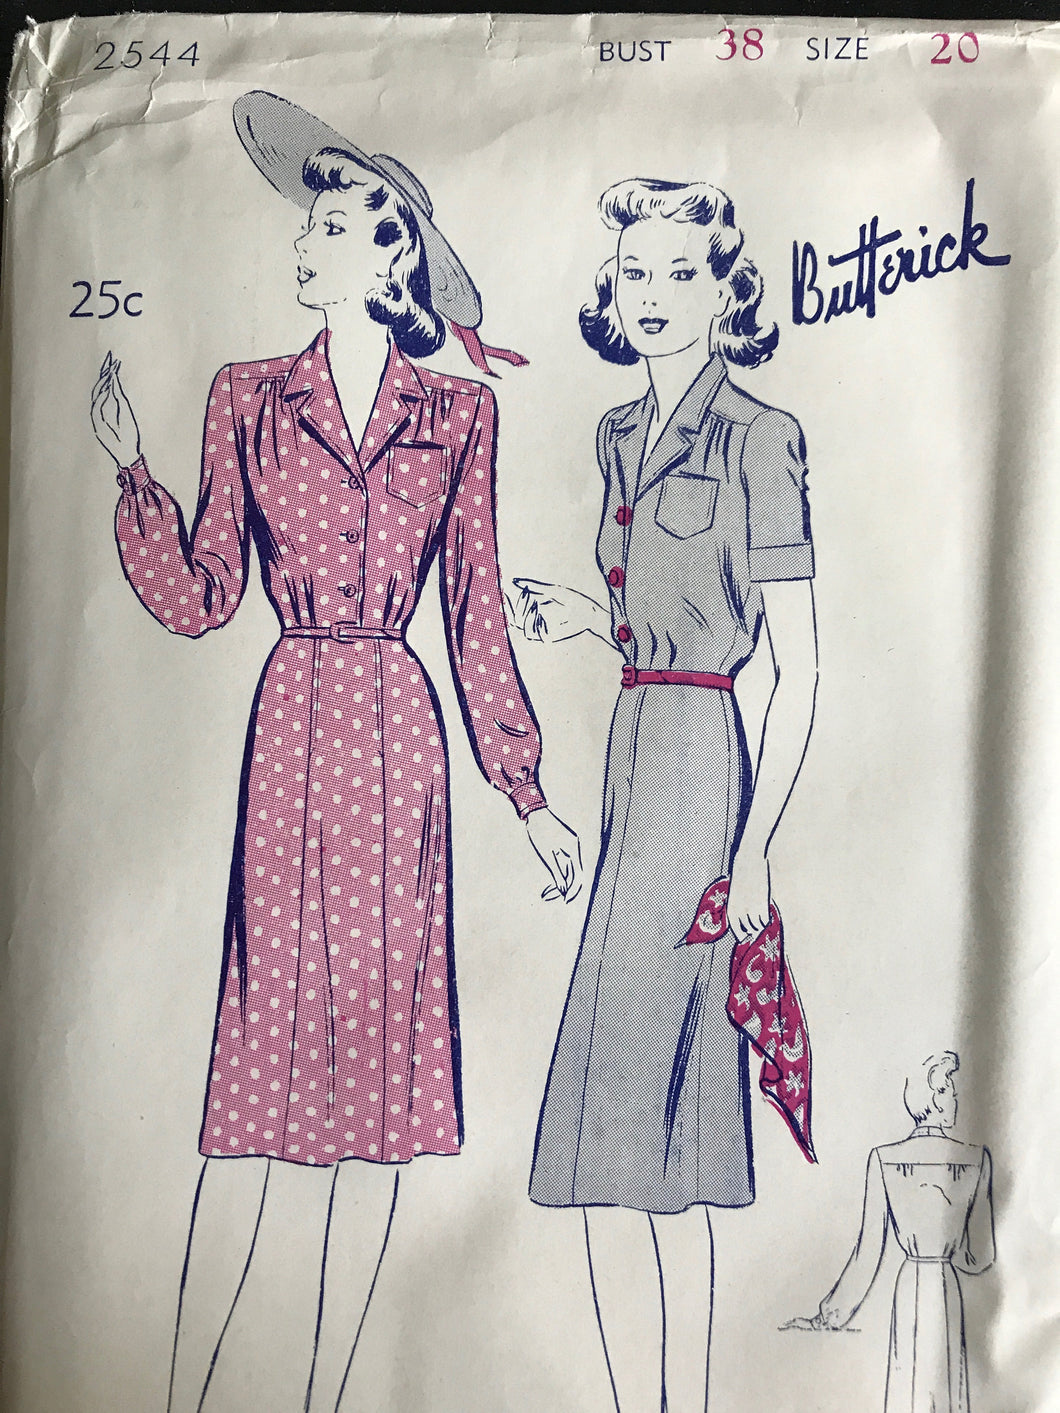 1940's Butterick One Piece Shirtwaist Dress with Pocket - Bust 38